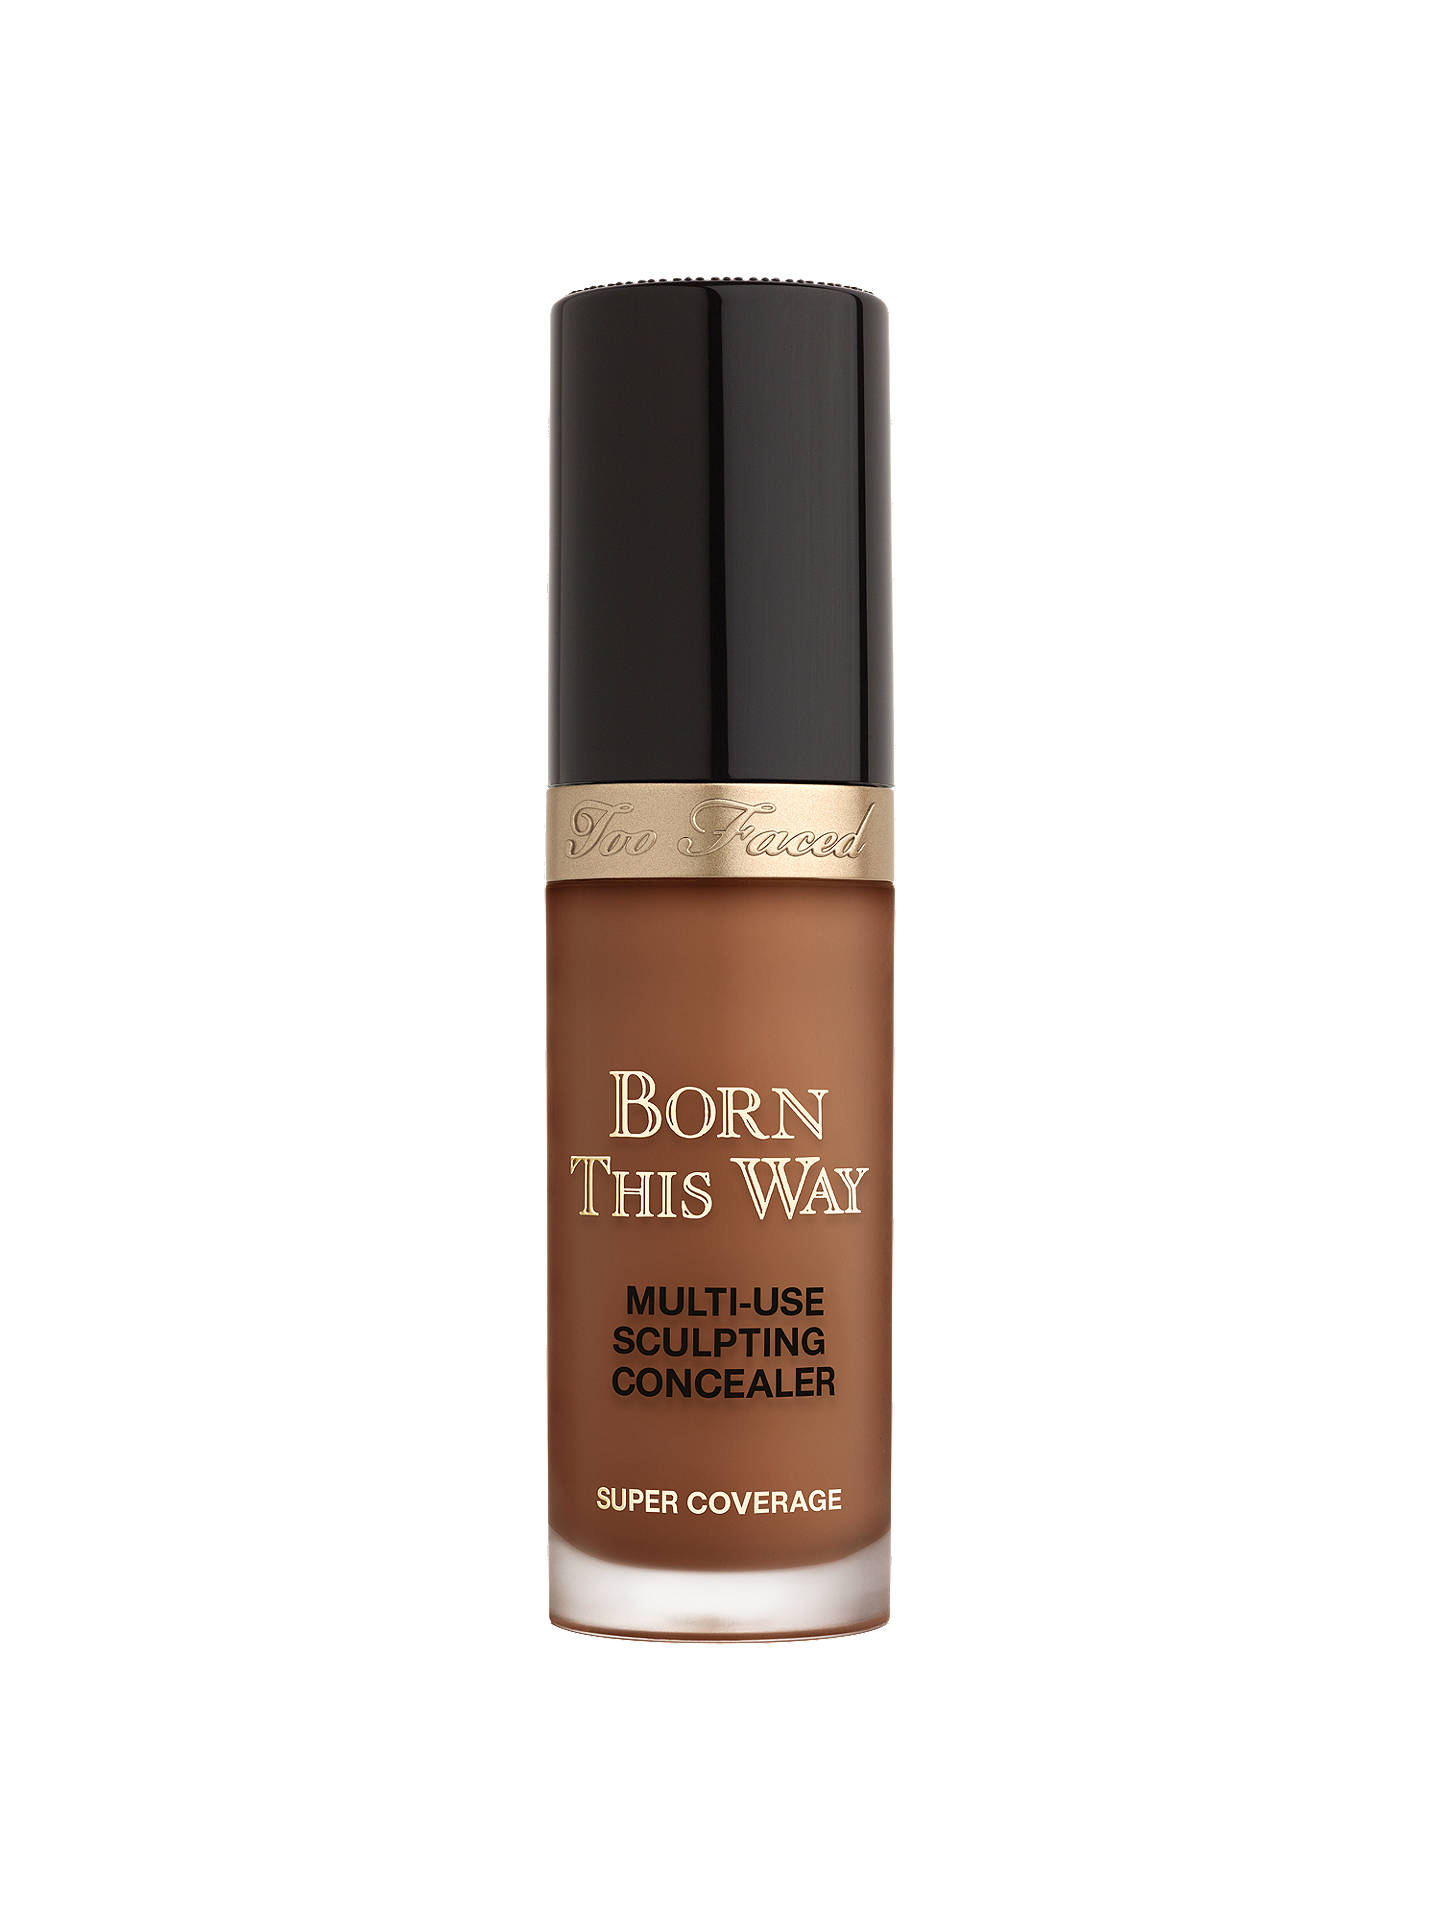 Buy Too Faced Born This Way Super Coverage Multi-Use Sculpting Concealer, Cocoa Online at johnlewis.com